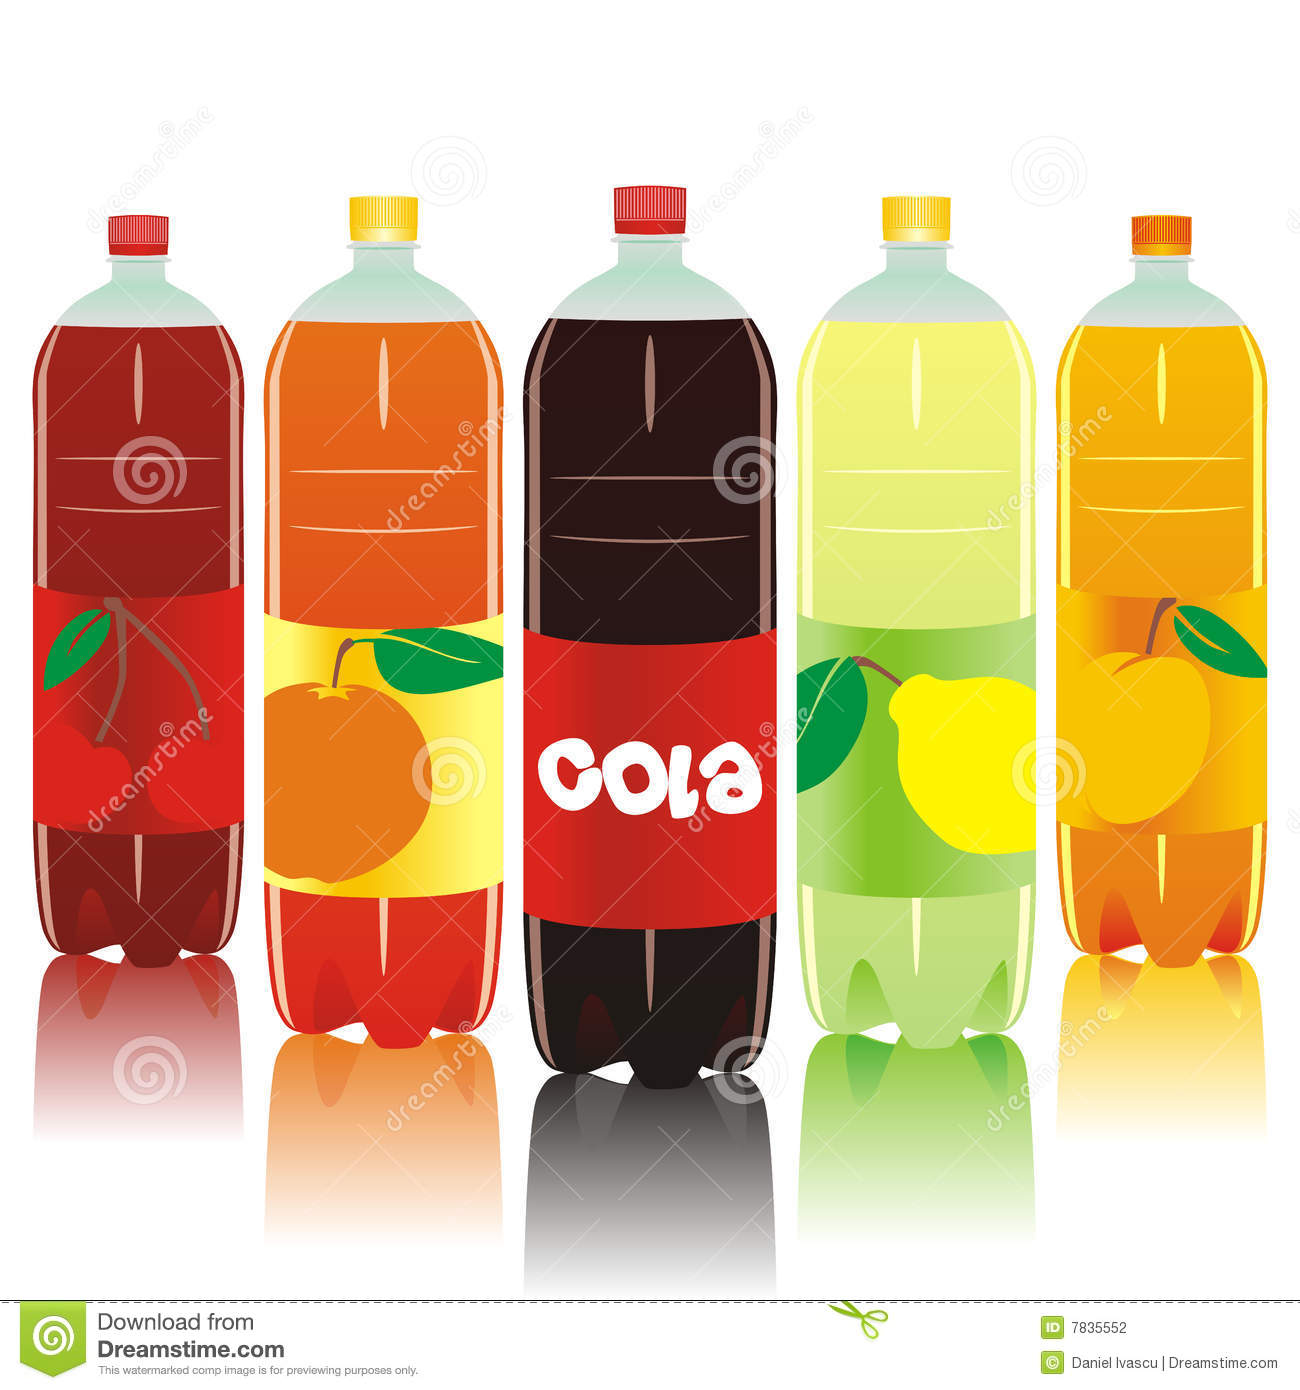 Soft drinks clipart - Clipground